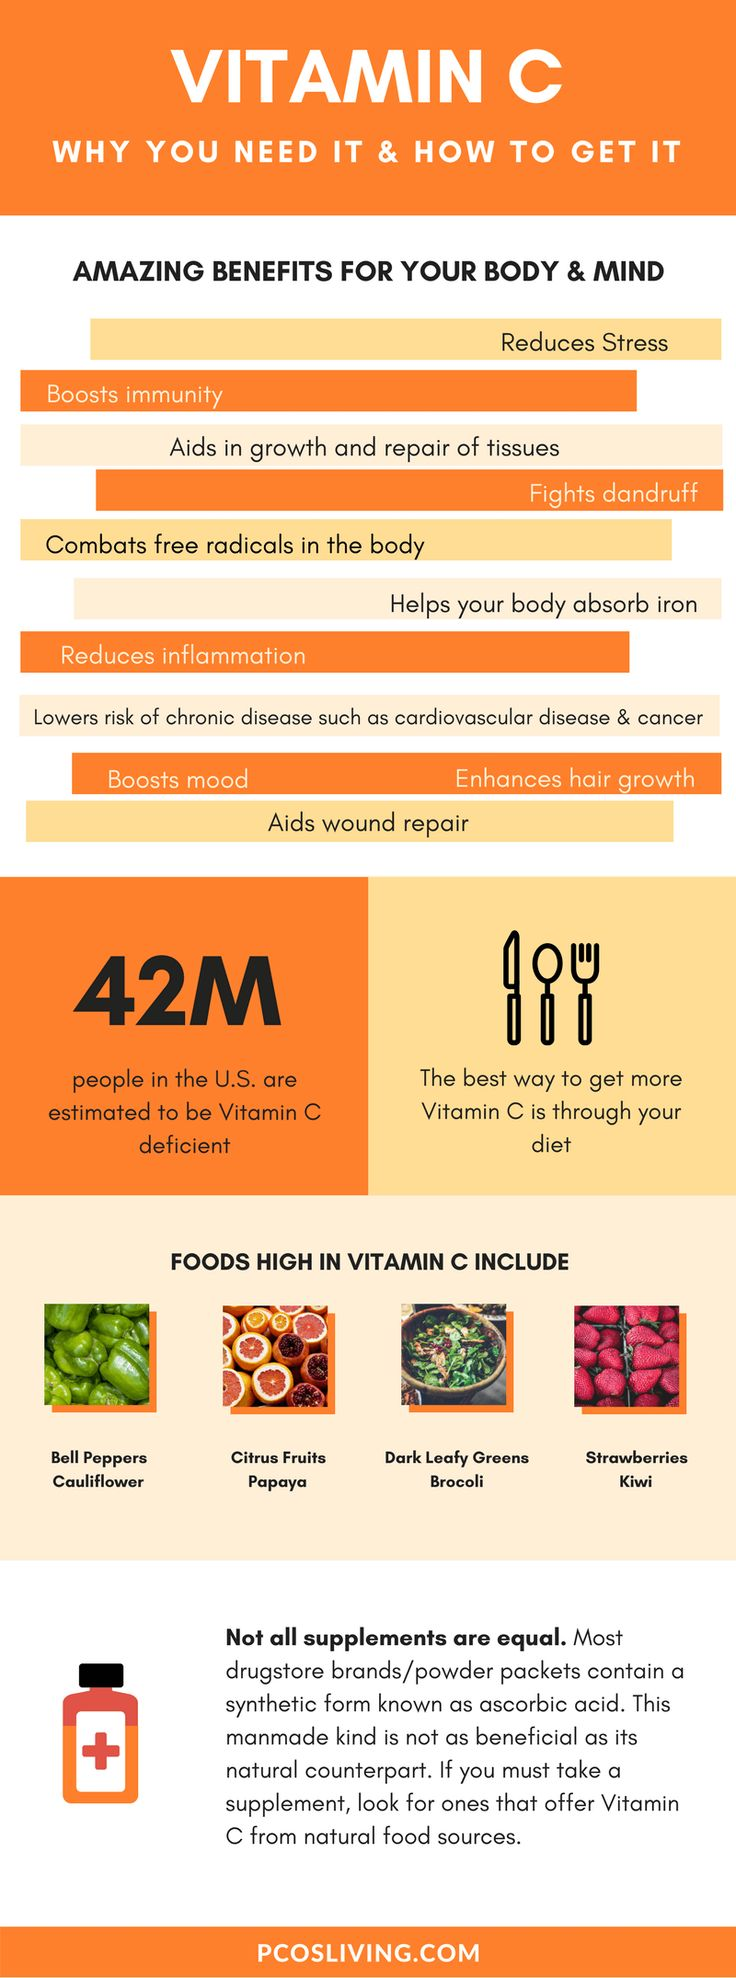 The amazing benefits of Vitamin C // Vitamin C Infographic // Benefits of Vitamin C // Vitamin C Use // Best Vitamin C Supplements // Foods High in Vitamin C | PCOSLiving